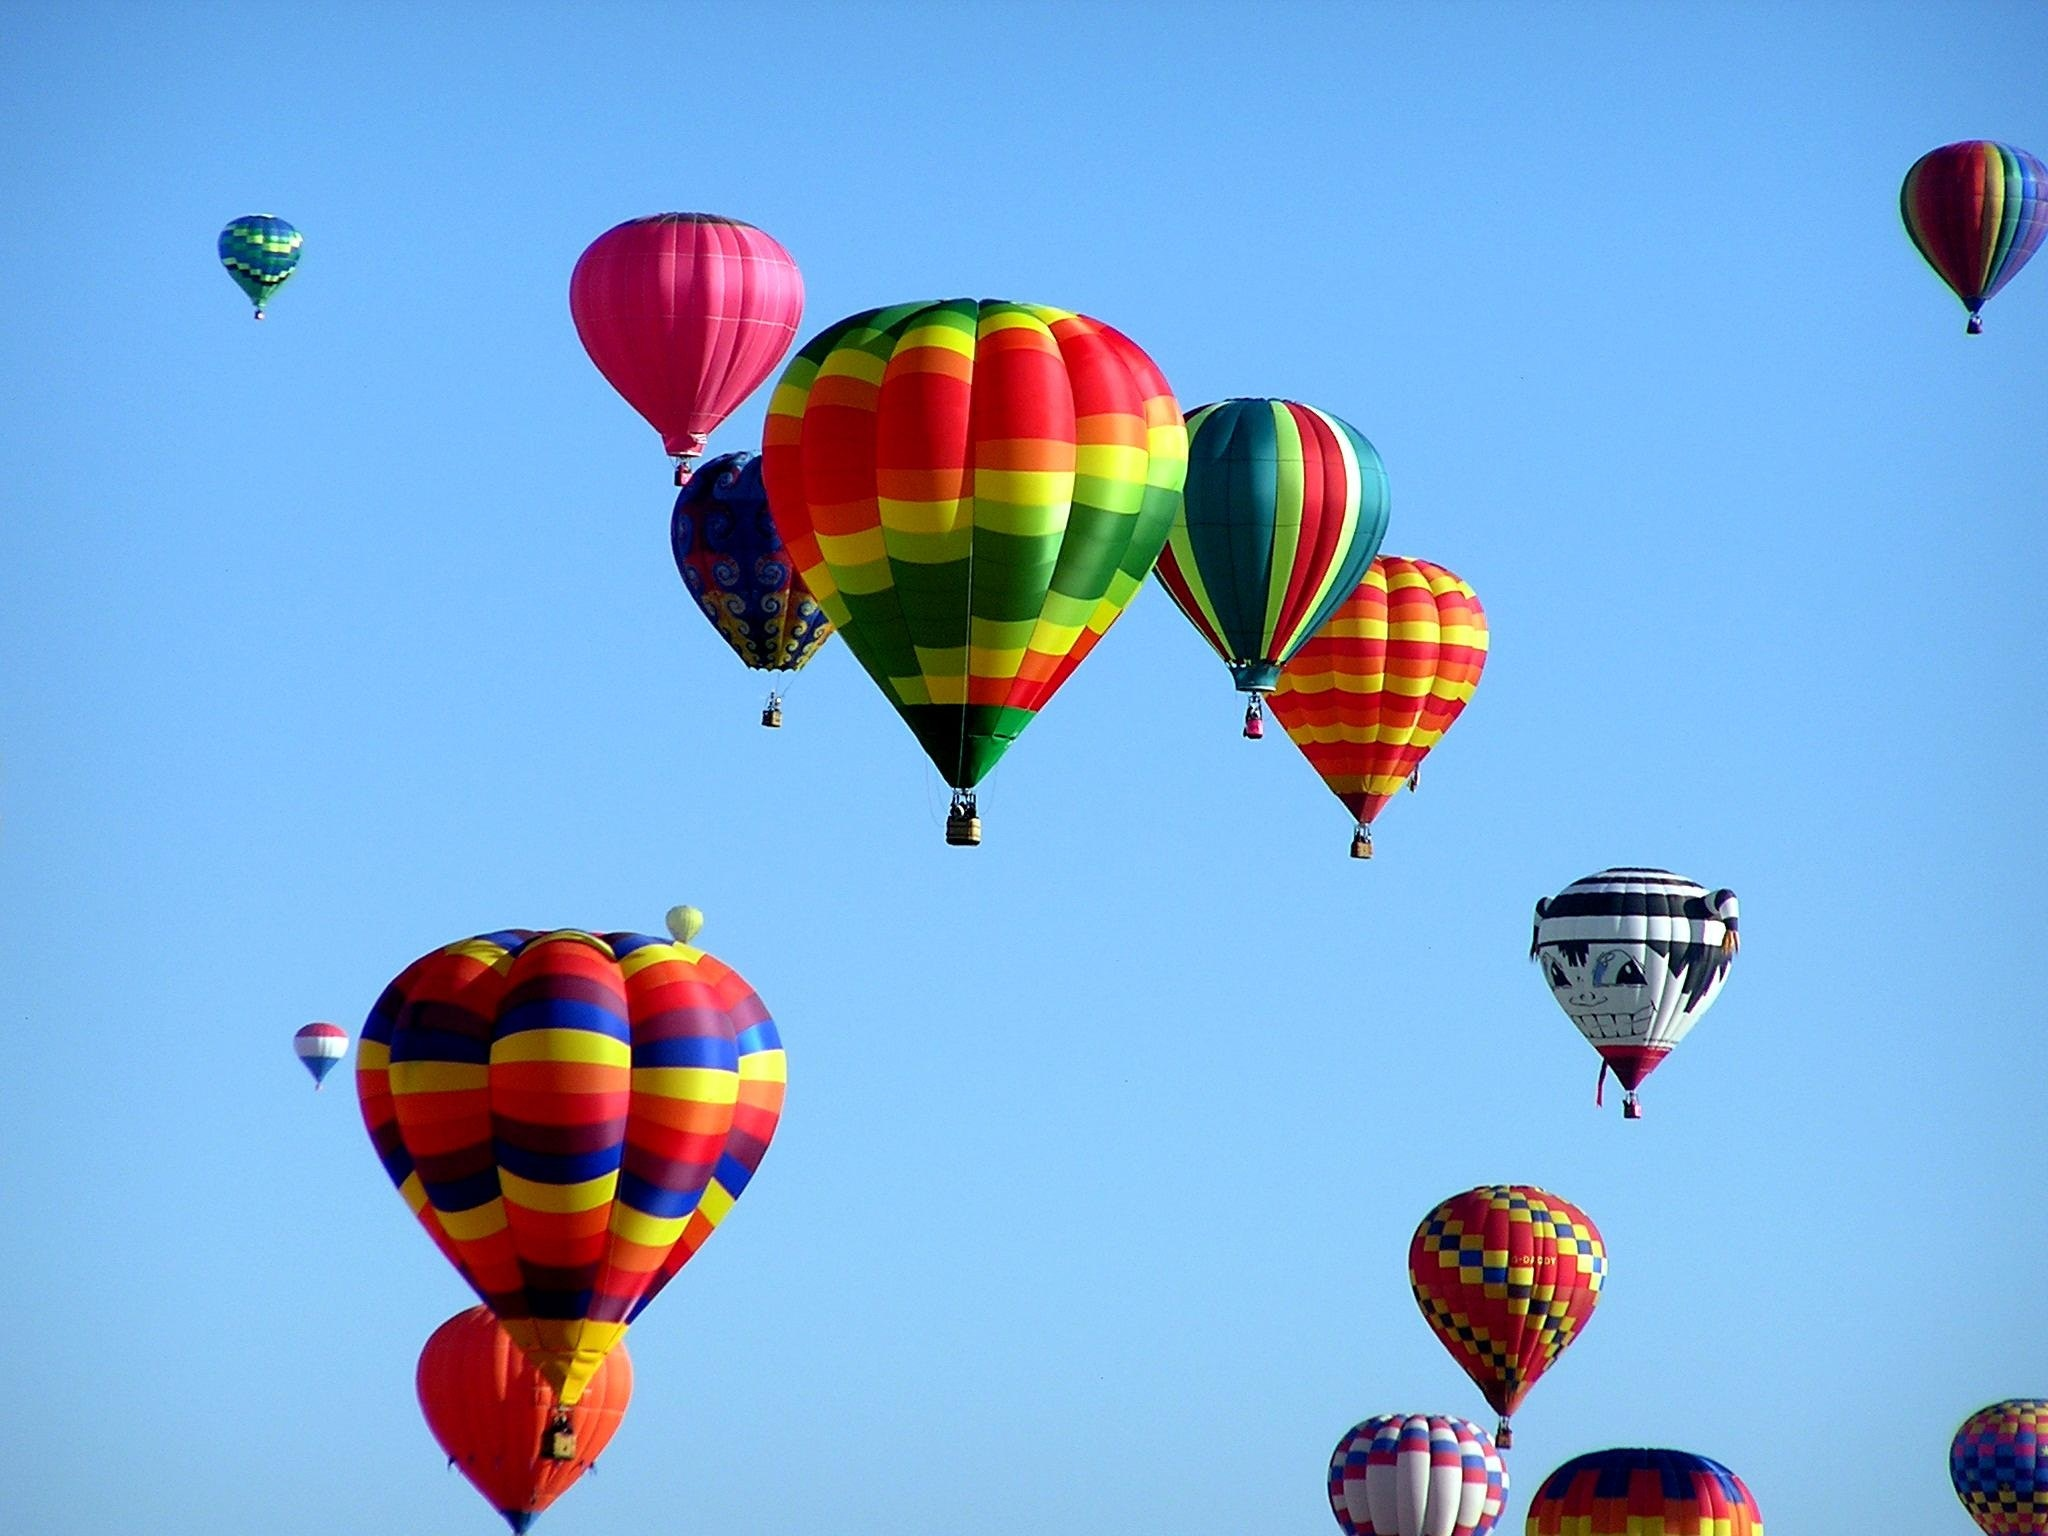 Red Green Hot Air Balloon During Daytime Free Stock Photo